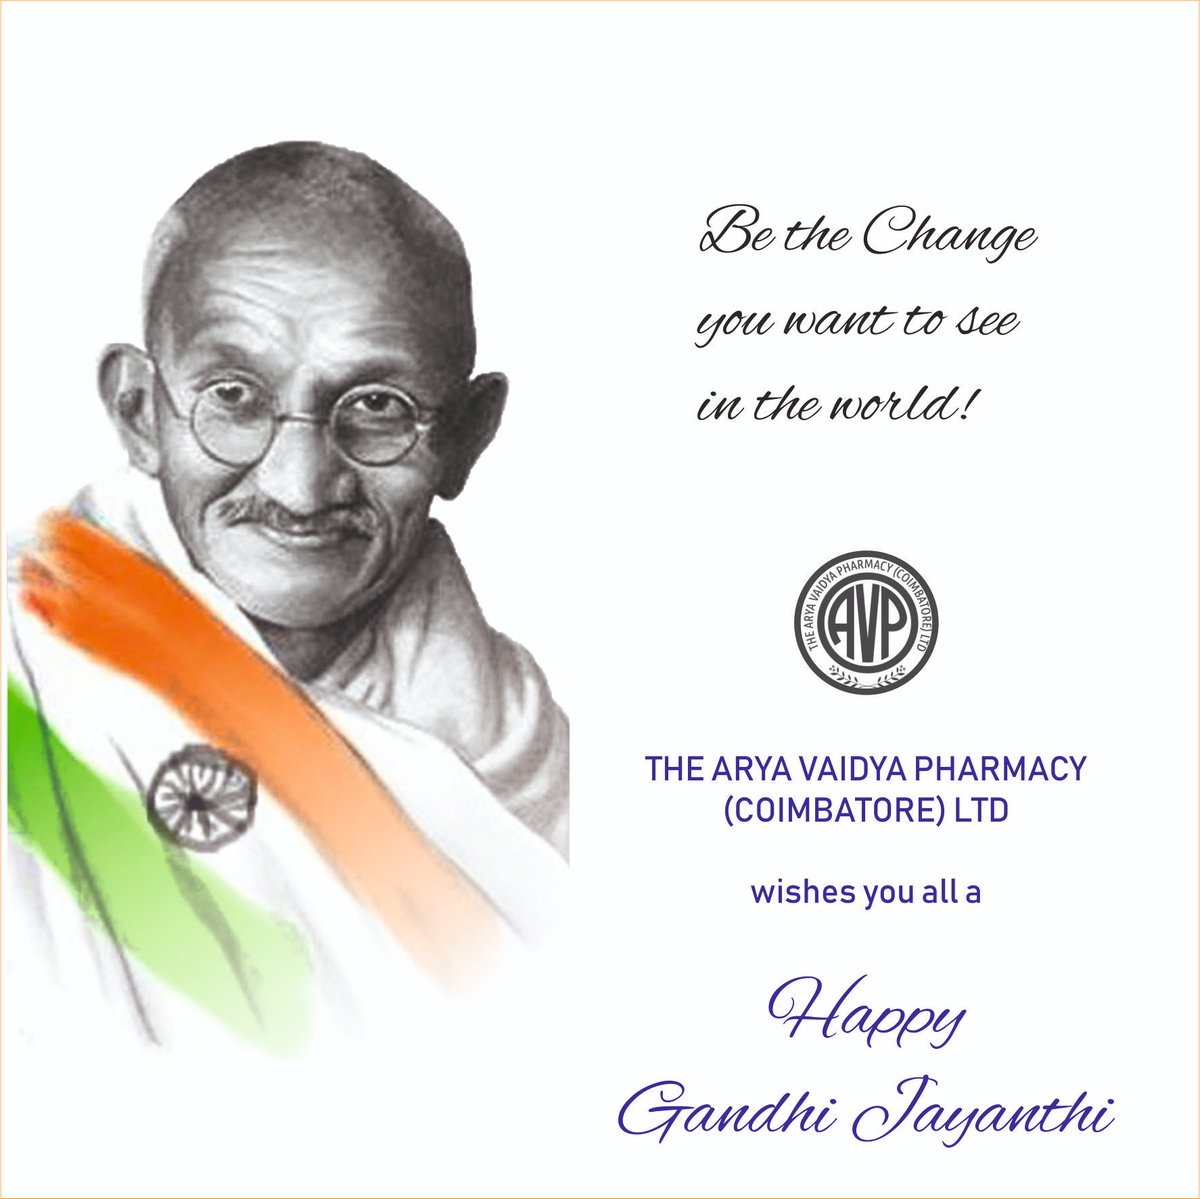 Saluting the Father of the Nation on his Birth Anniversary! Happy Gandhi Jayanthi from all of us at Arya Vaidya Pharmacy (Coimbatore) Ltd. #gandhijayanthi #mahatma #bethechange #seethechange #avpayurveda #avpforlife #avpforhealth